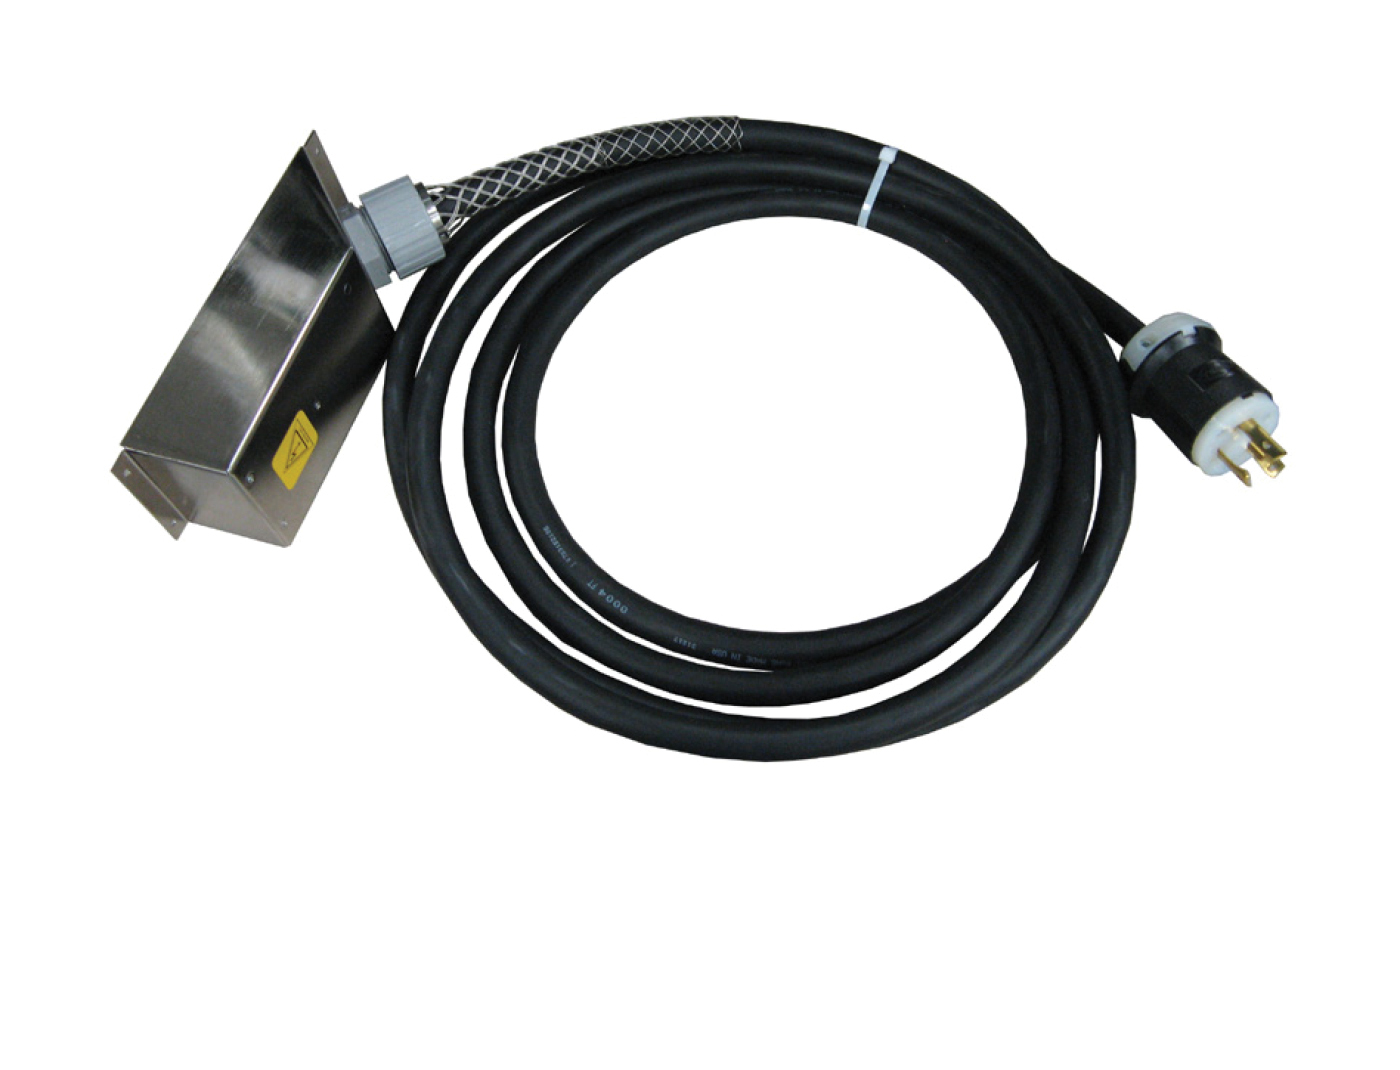 Cable Assemblies and Wire Harnessing